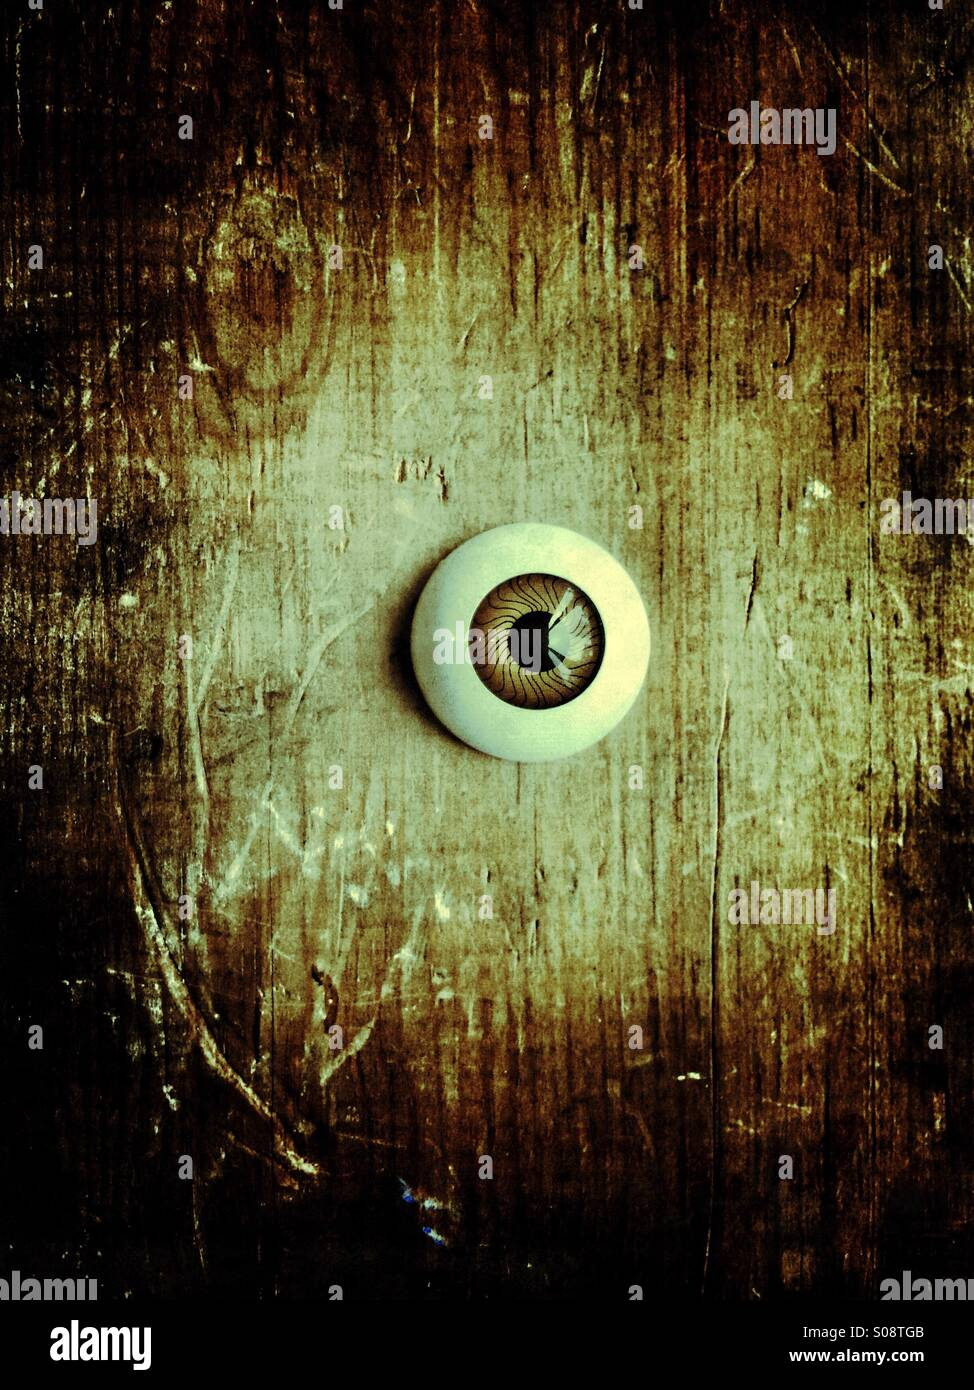 Plastic eye - Stock Image